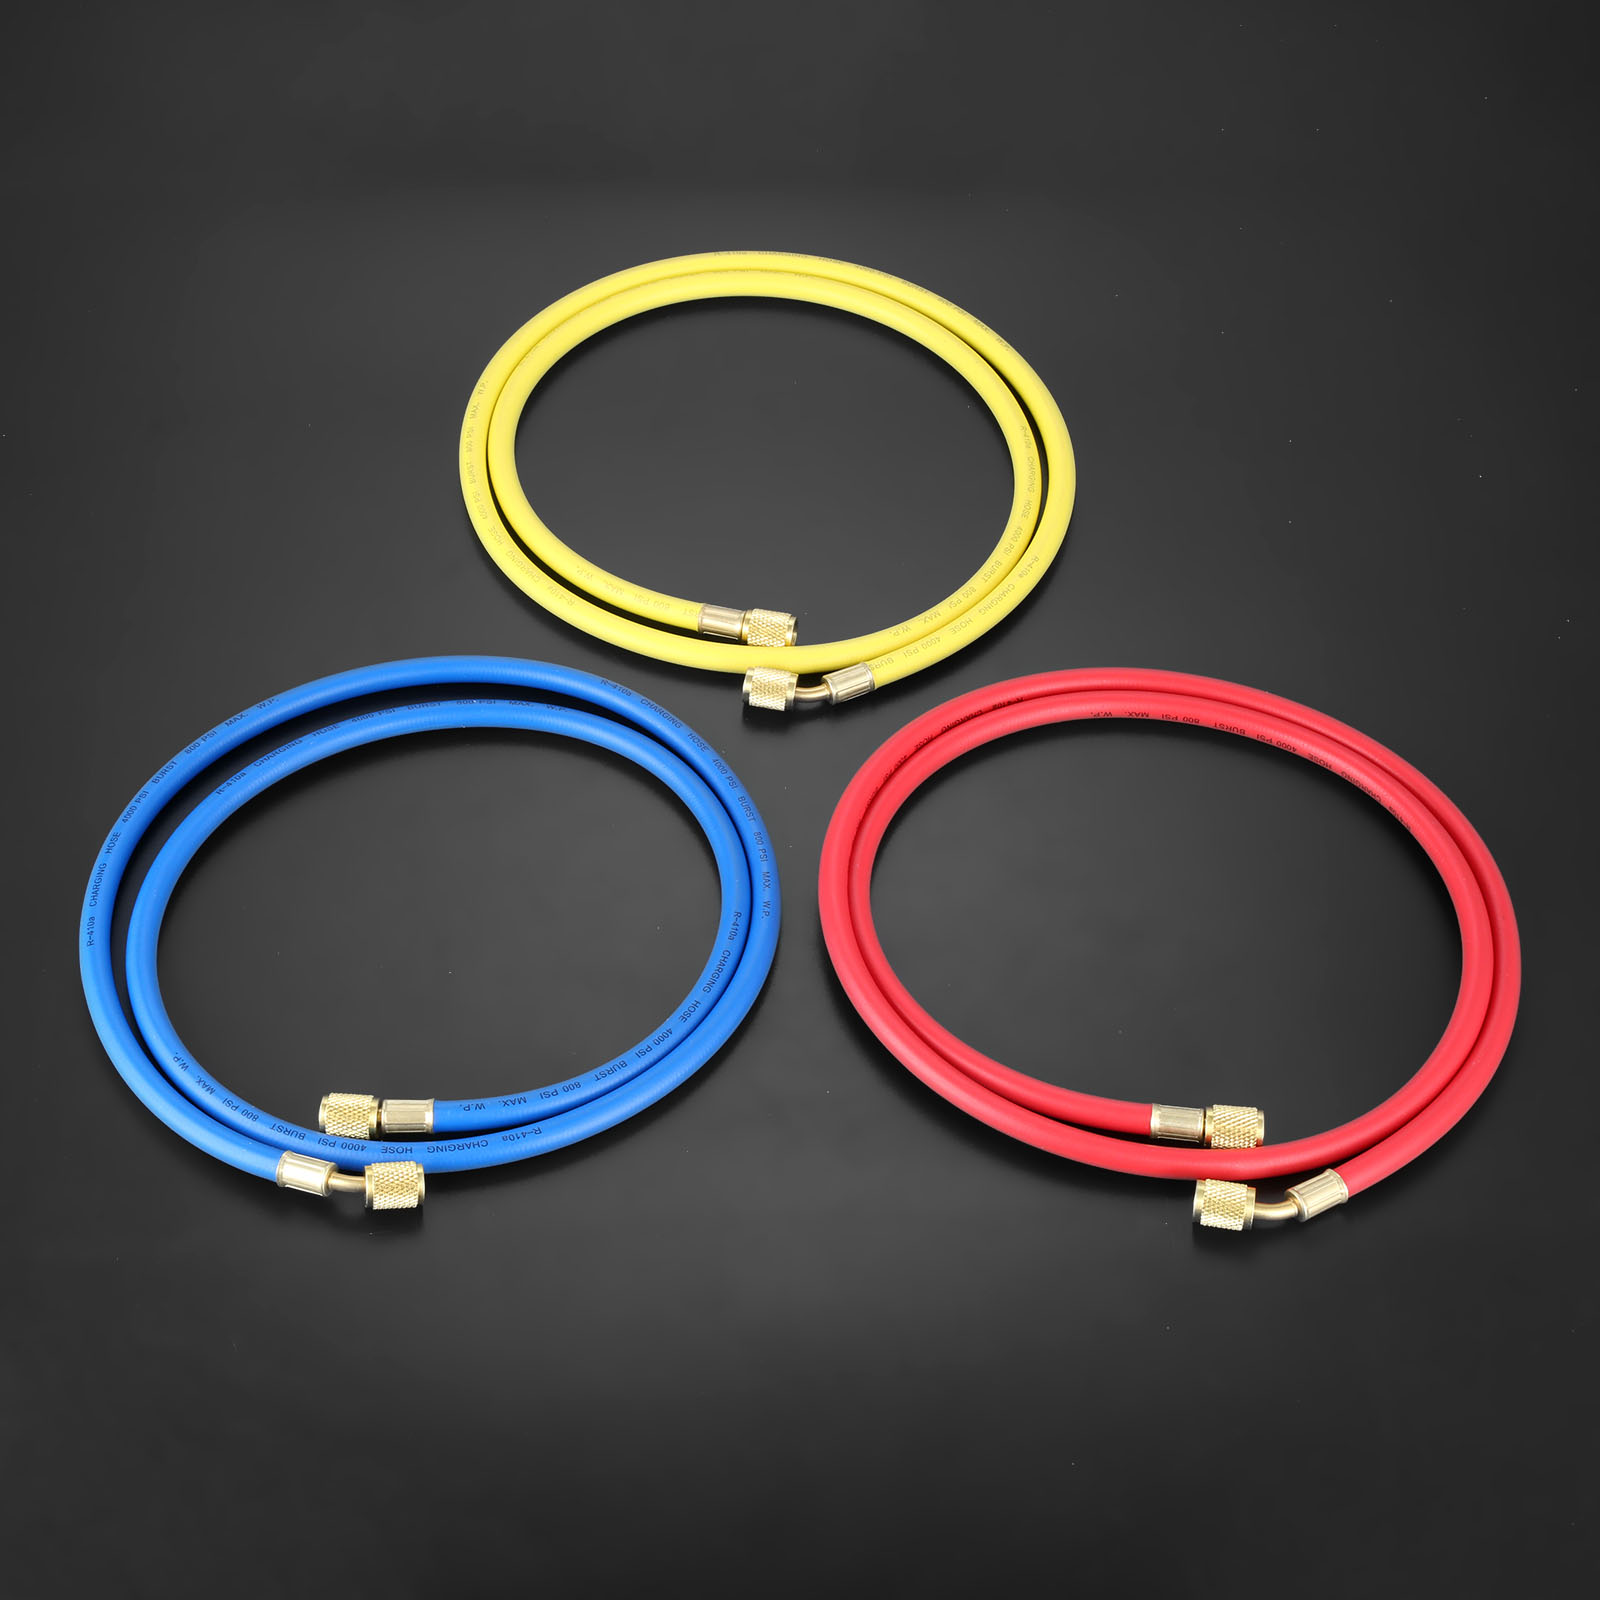 "3Pcs 60"" HVAC 1/4"" SAE R410a R134a AC Refrigeration Permutation Charging Hoses HVAC 800PSI Air Conditioning Hose Mayitr 150cm-in Air-conditioning Installation from Automobiles & Motorcycles"